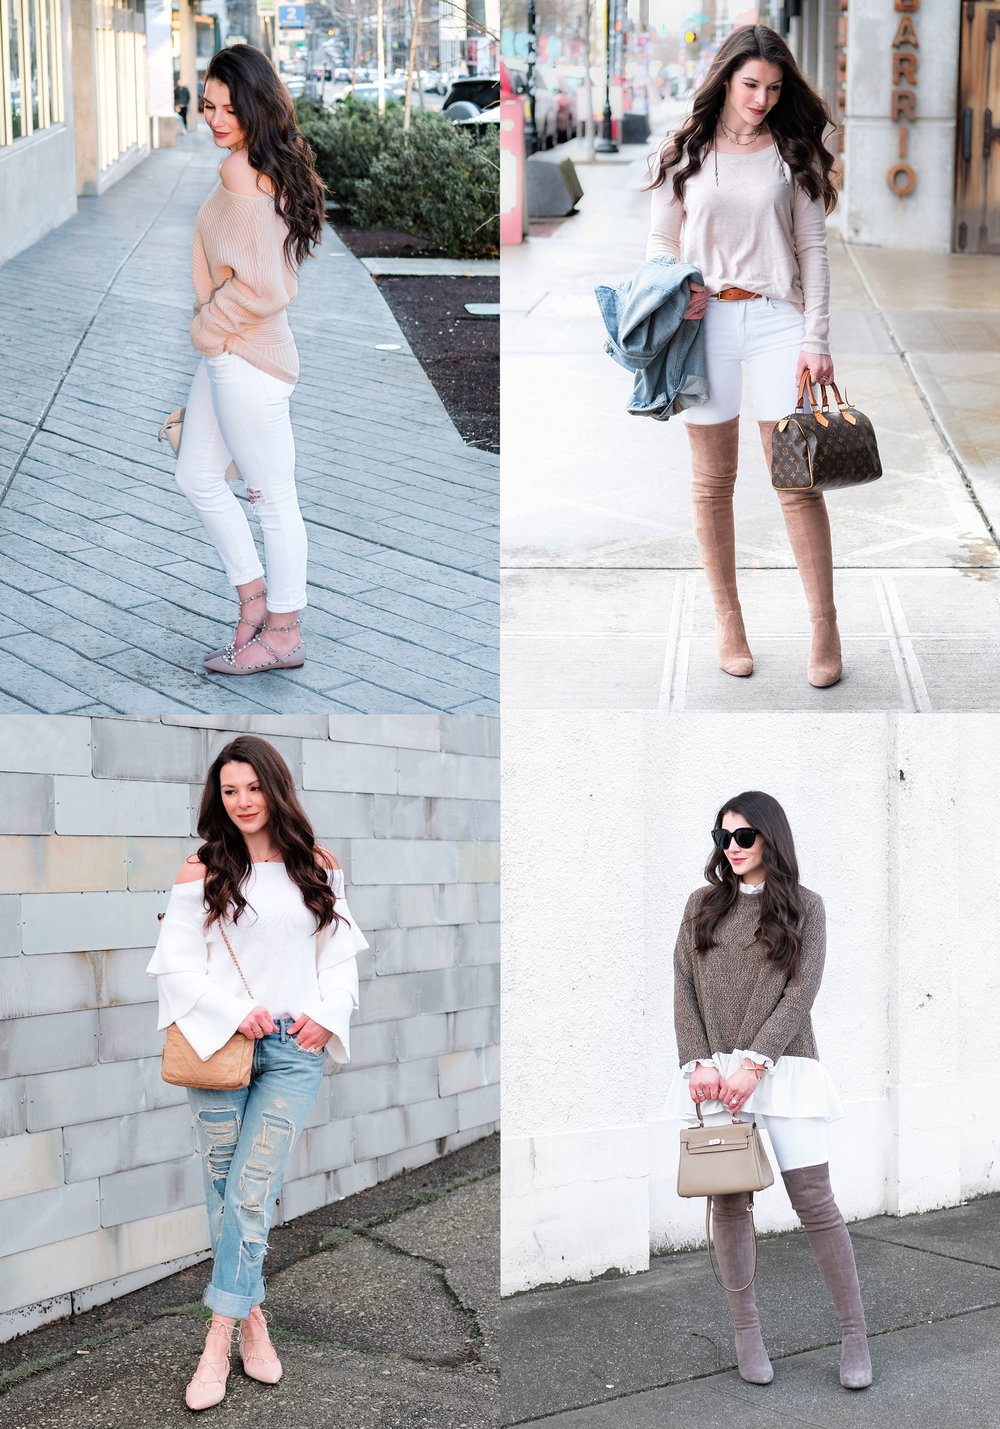 5 OUTFIT IDEAS FOR EARLY SPRING u2014 Me and Mr. Jones